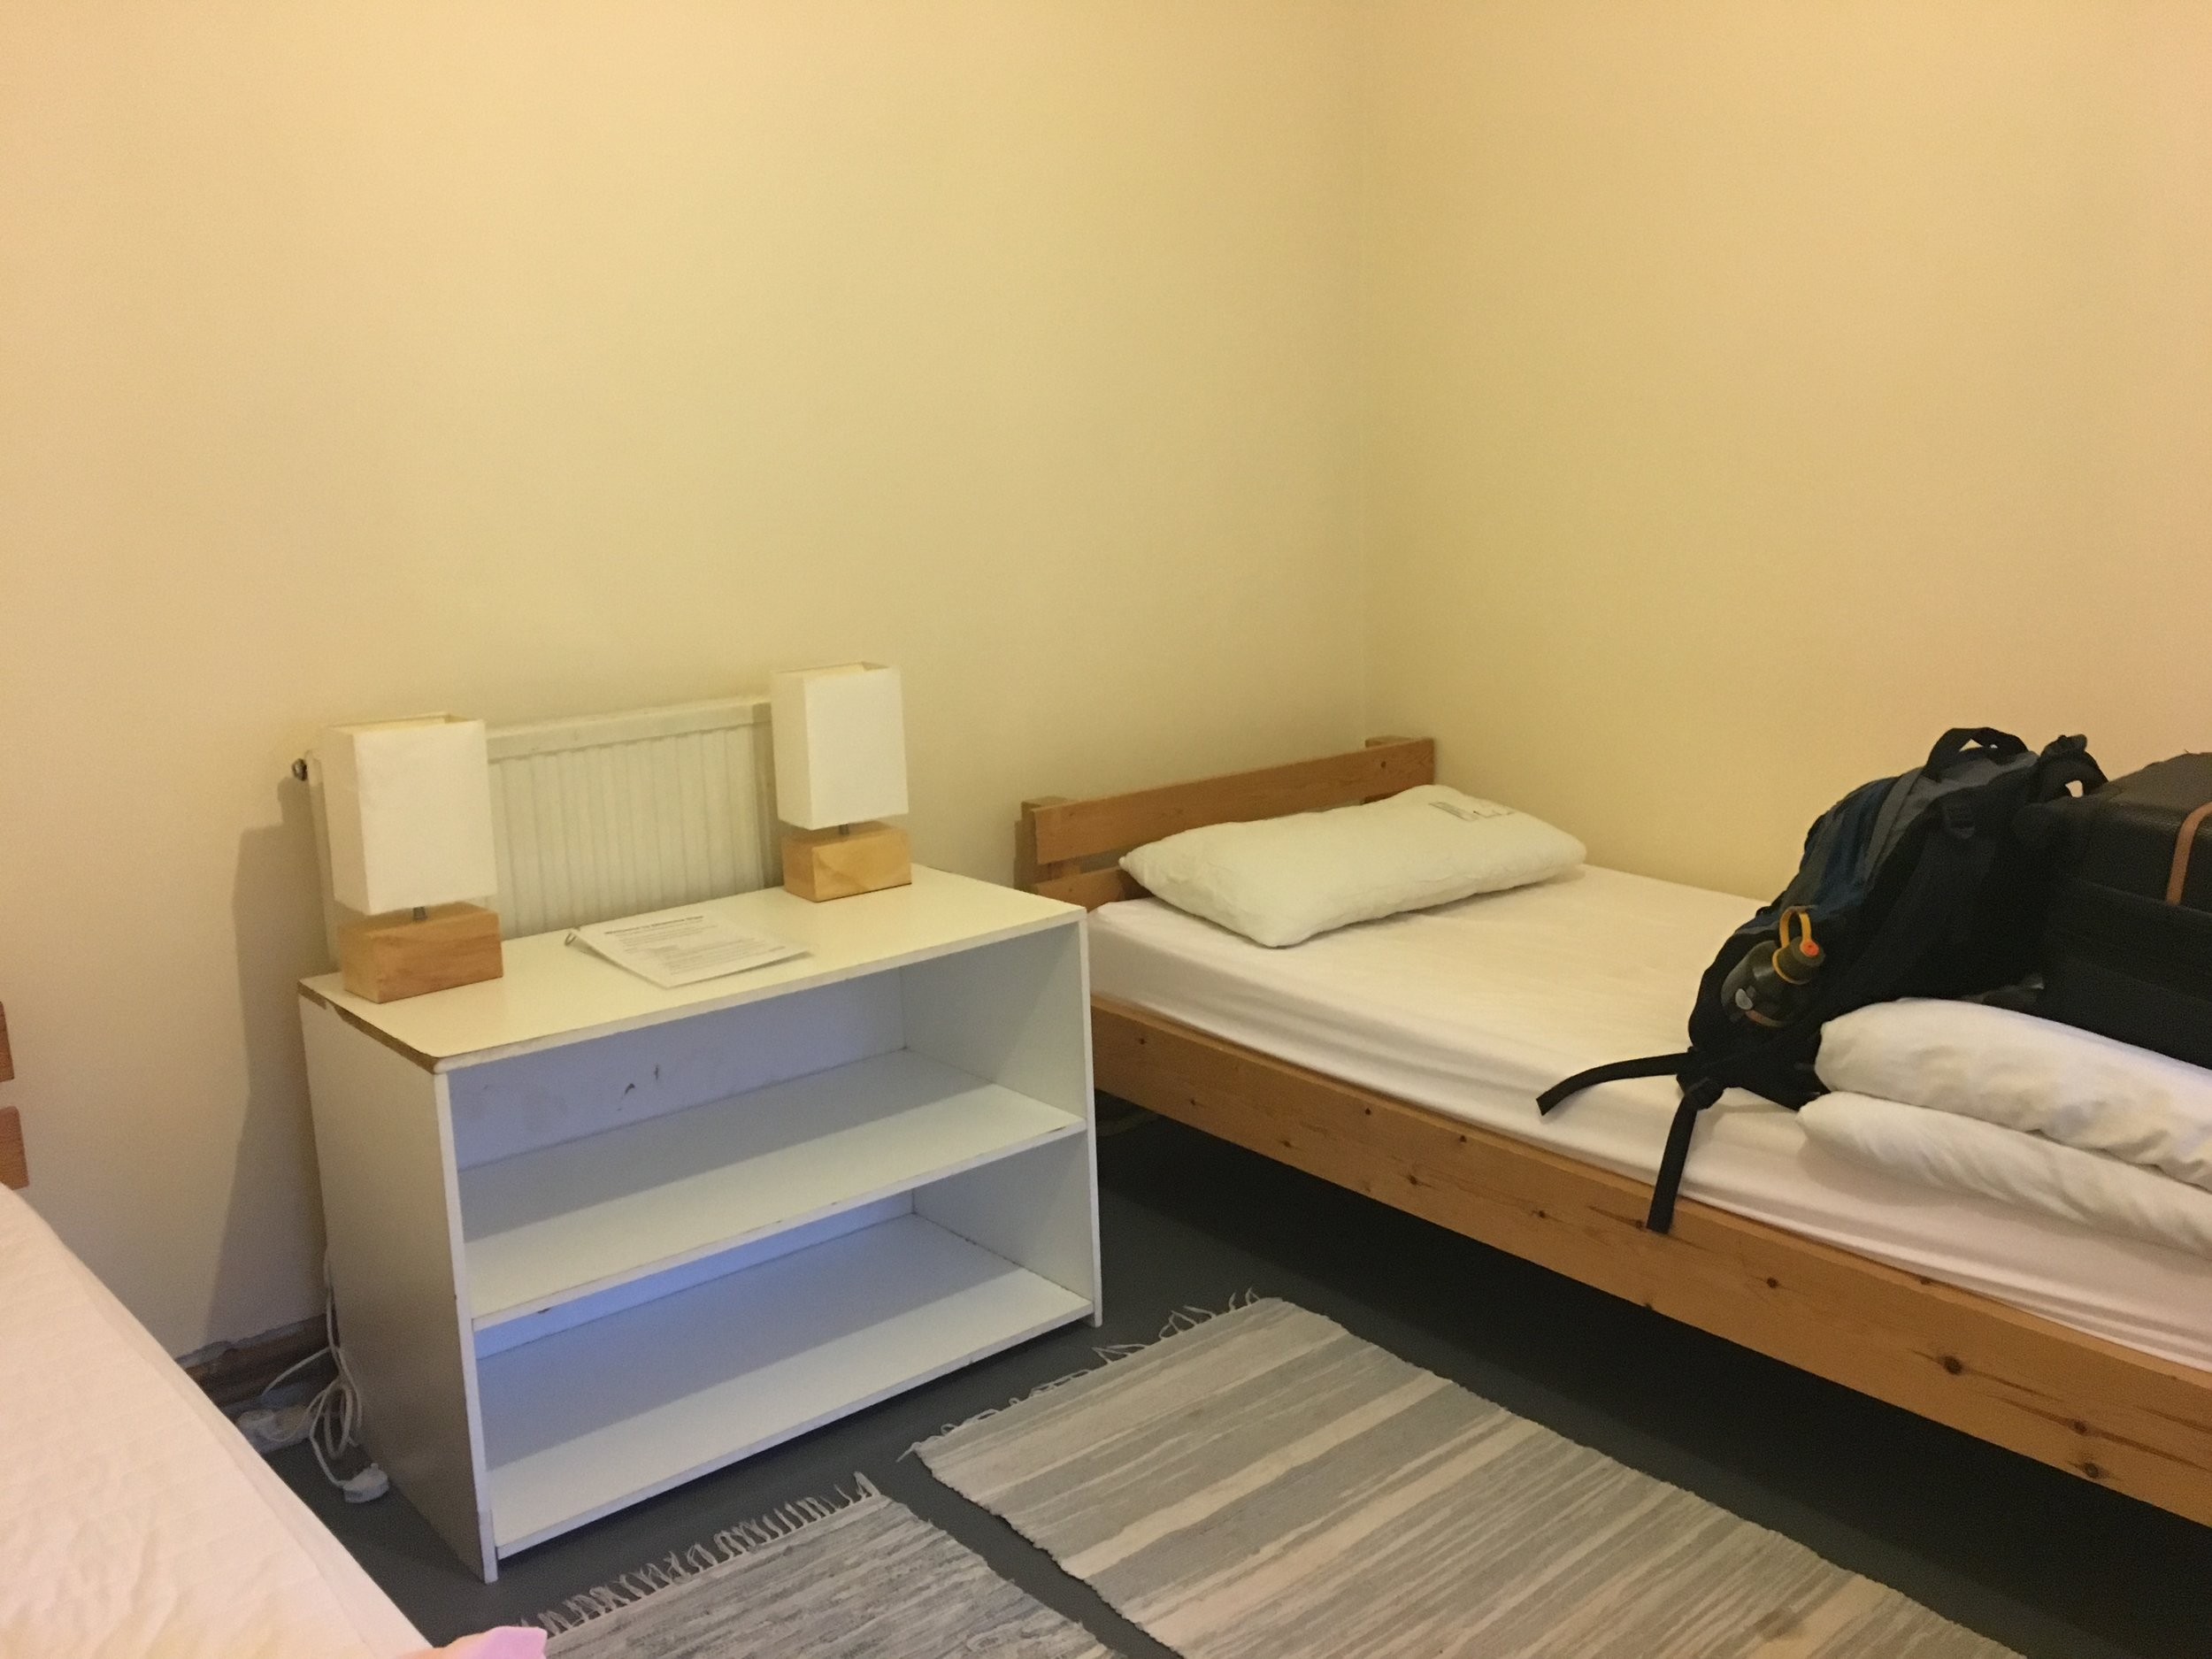 My non-luxurious bed was actually quite comfortable.